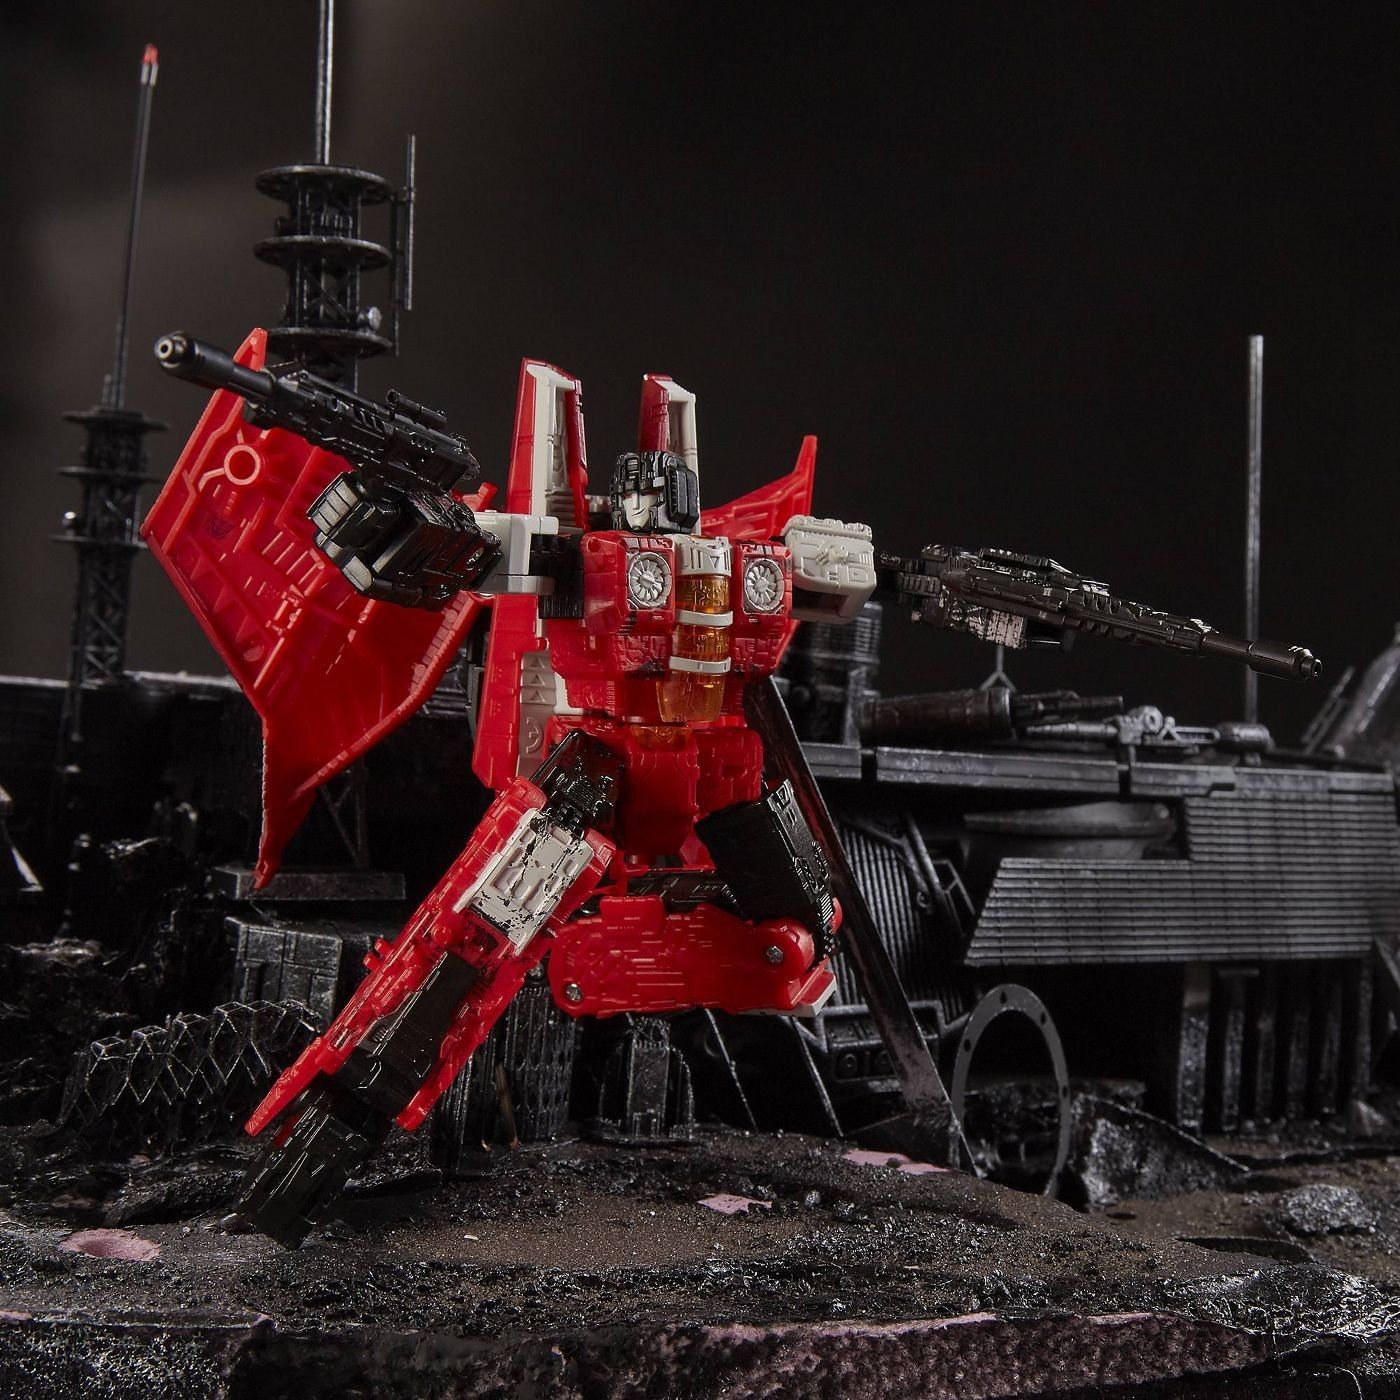 Transformers News: Transformers Selects War for Cybertron Siege Red Wing Back in Stock at Target.com